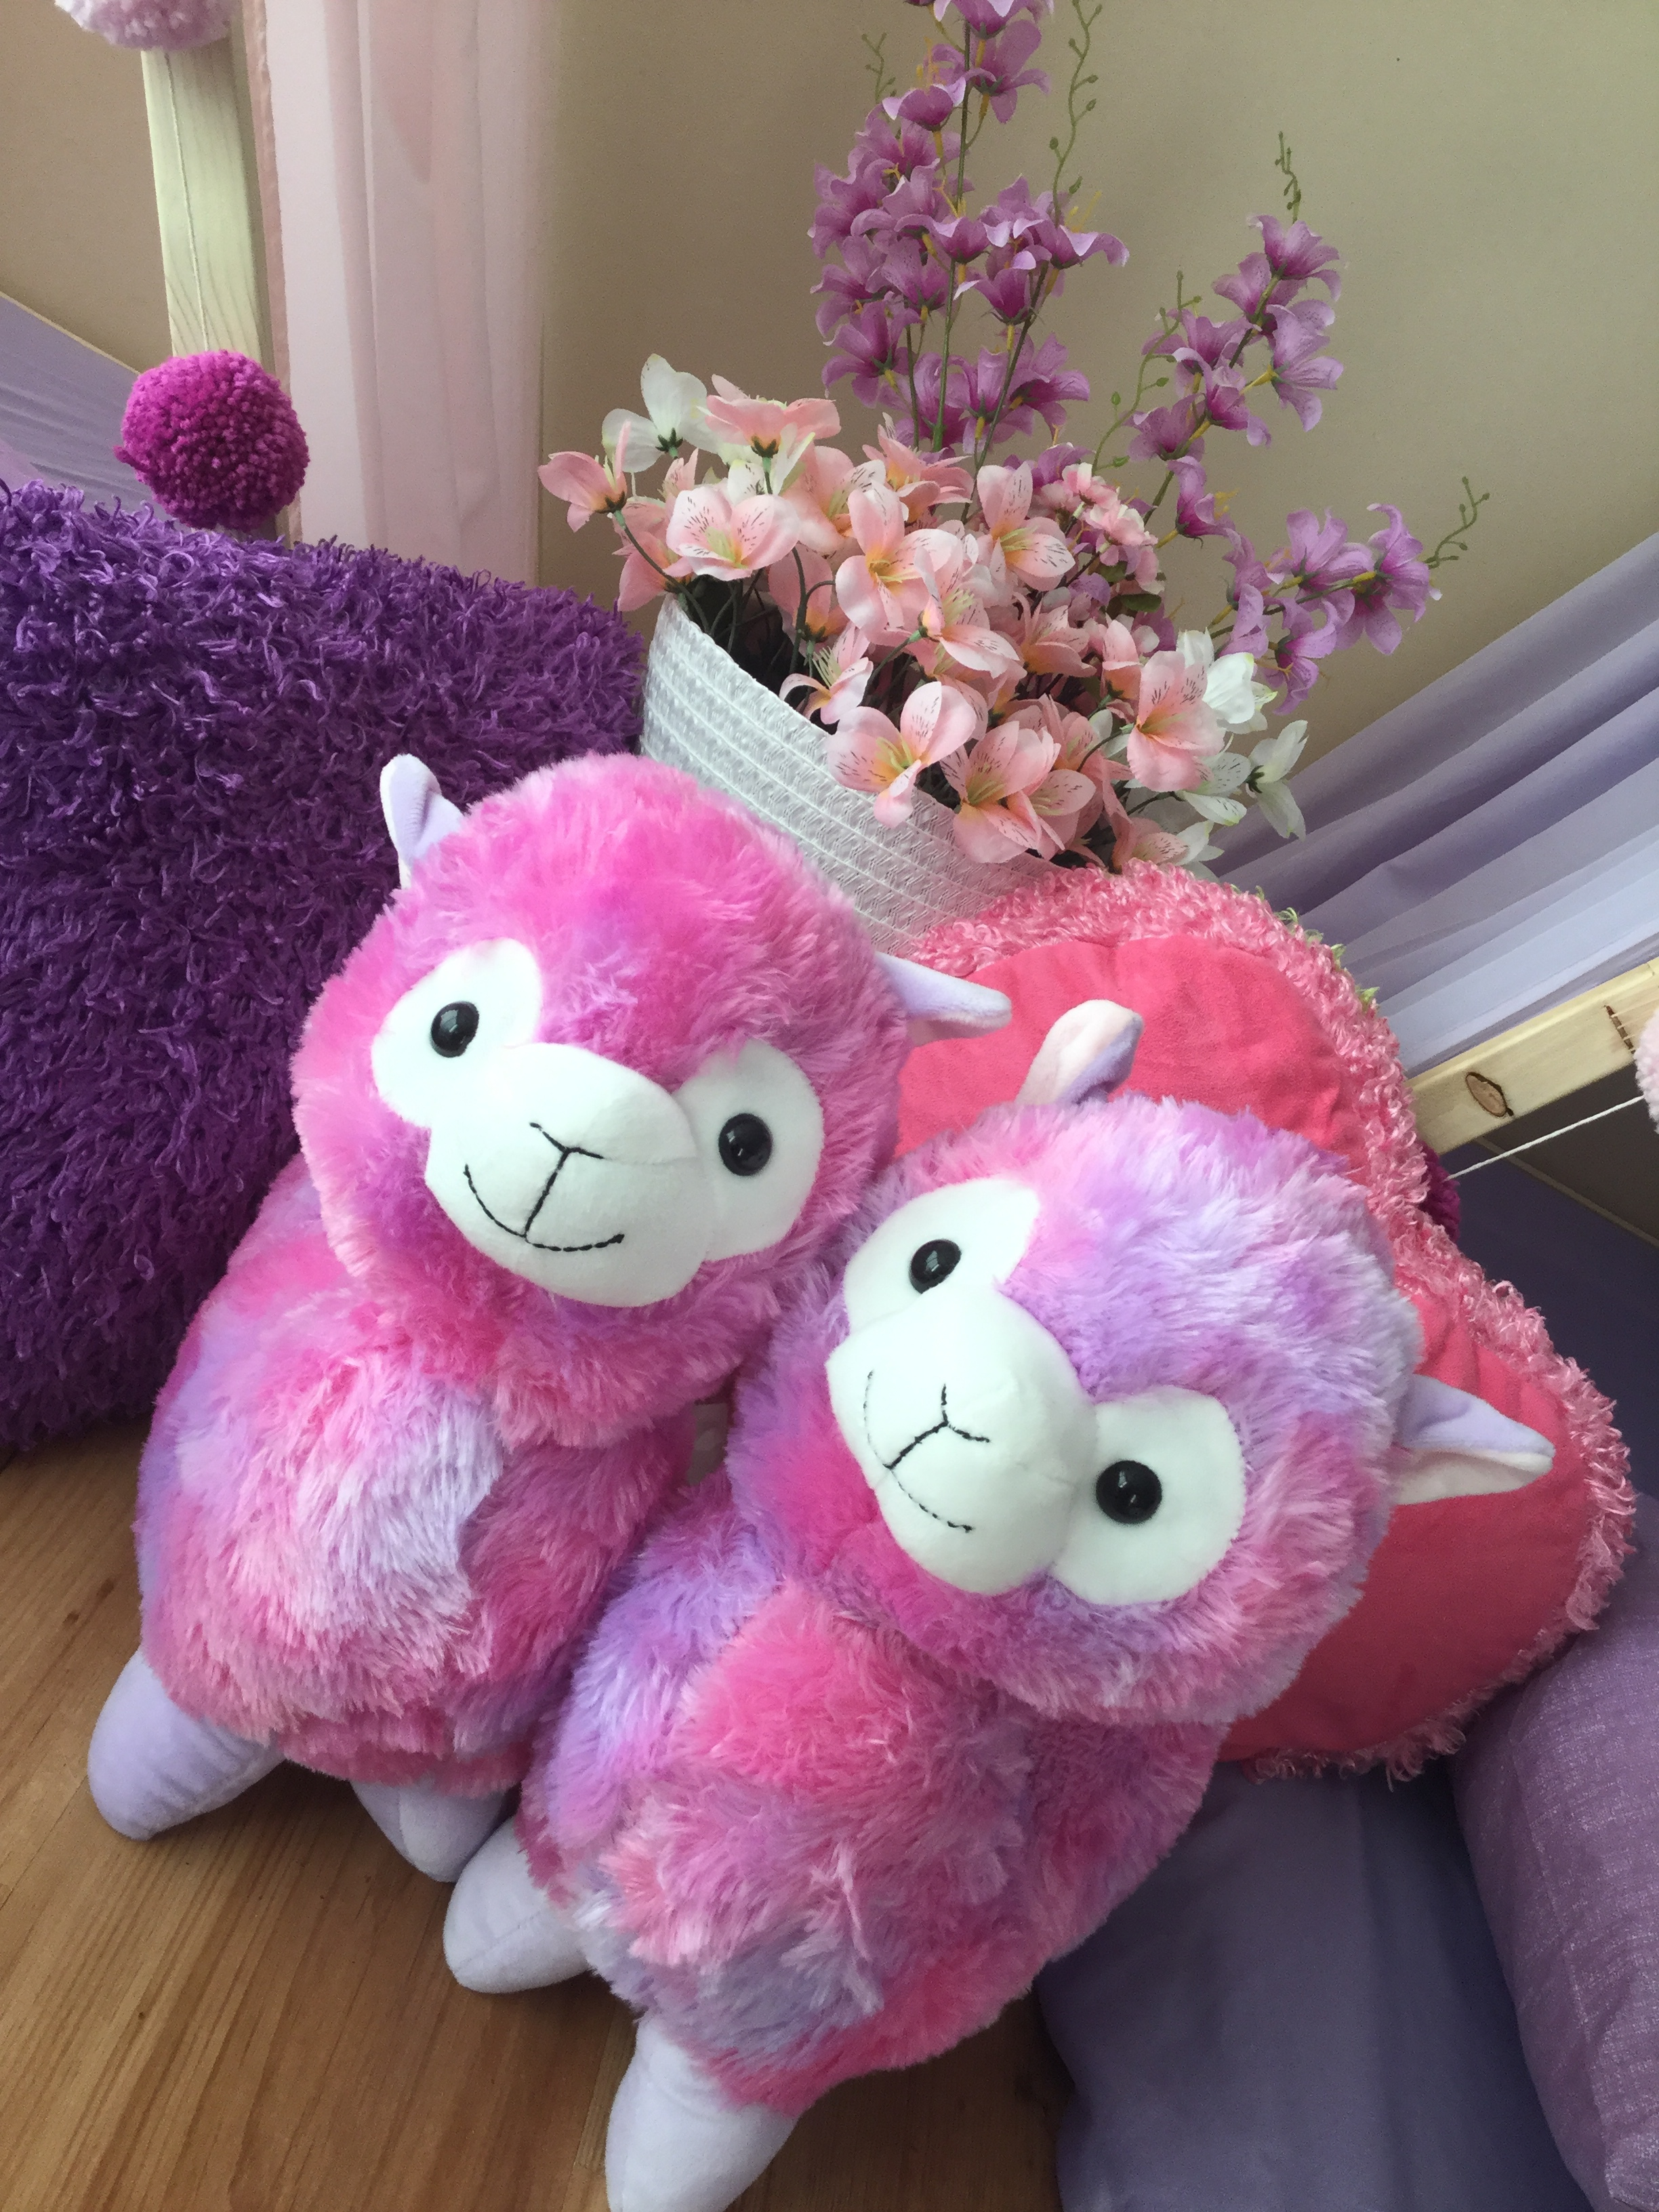 """Hola Llama"" - Llamas are the newest obsession and this theme seriously will make for the best Sleepover Party!This theme will definitely capture your heart! STP theme ""Hola Llama"" with stuff animal llamas is the cutest thing ever! Llama theme parties are the newest trends!"